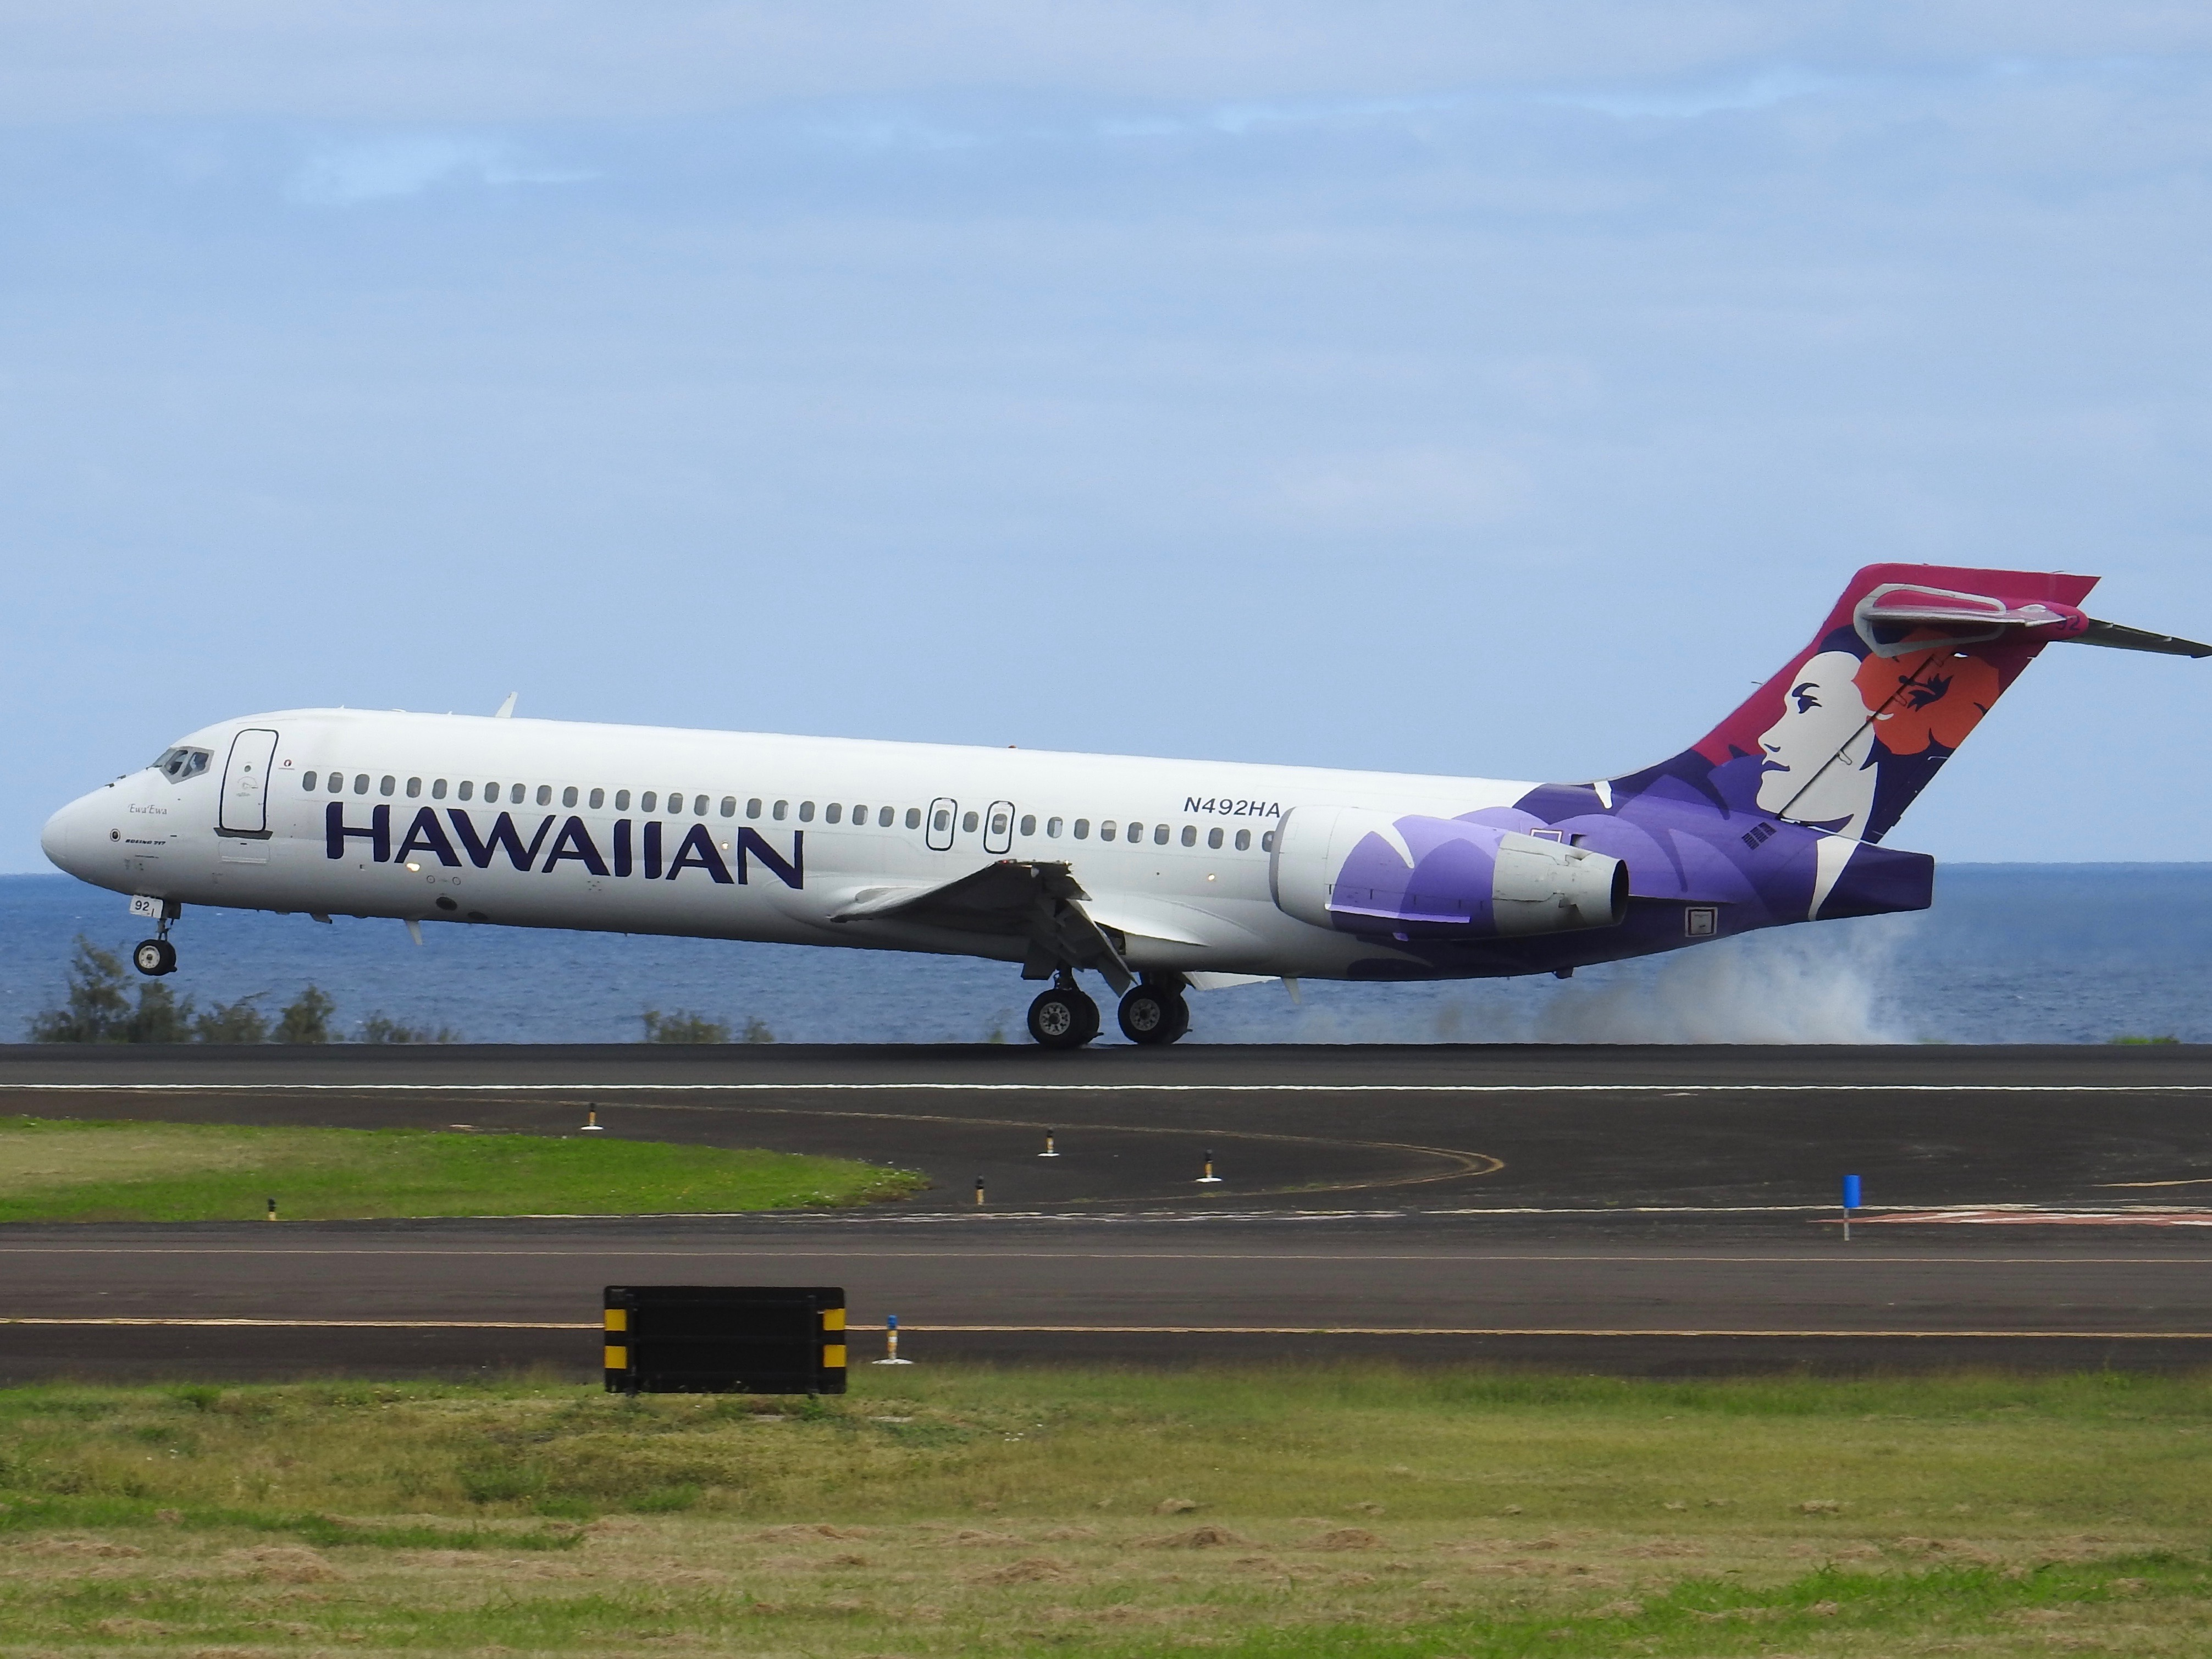 A Hawaiian Airlines 717 (Photo: AirlineGeeks | Ian McMurtry)